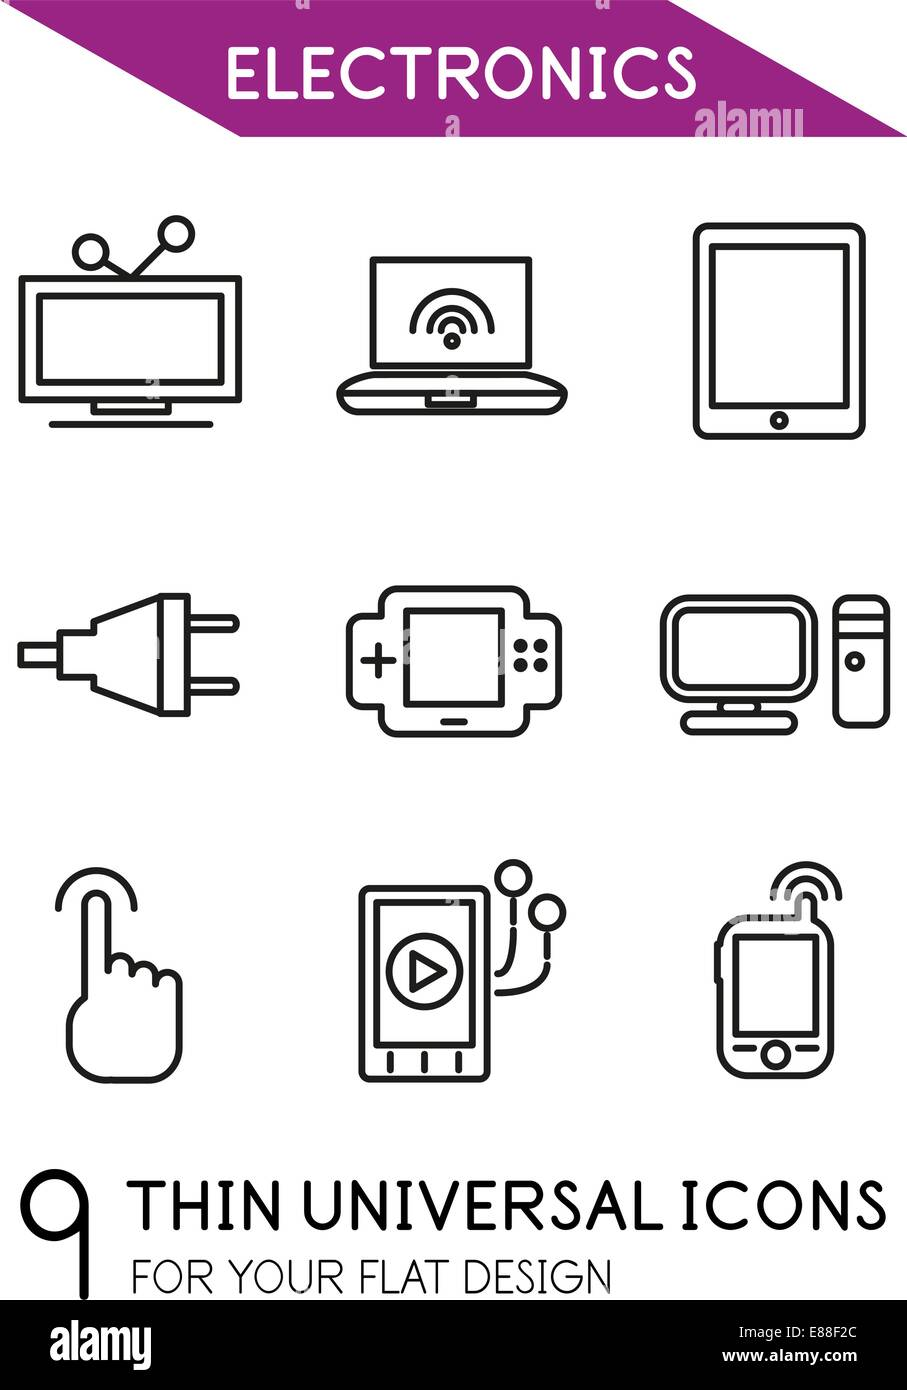 Electronics thin line icon set - 9 computer symbols for your flat ...